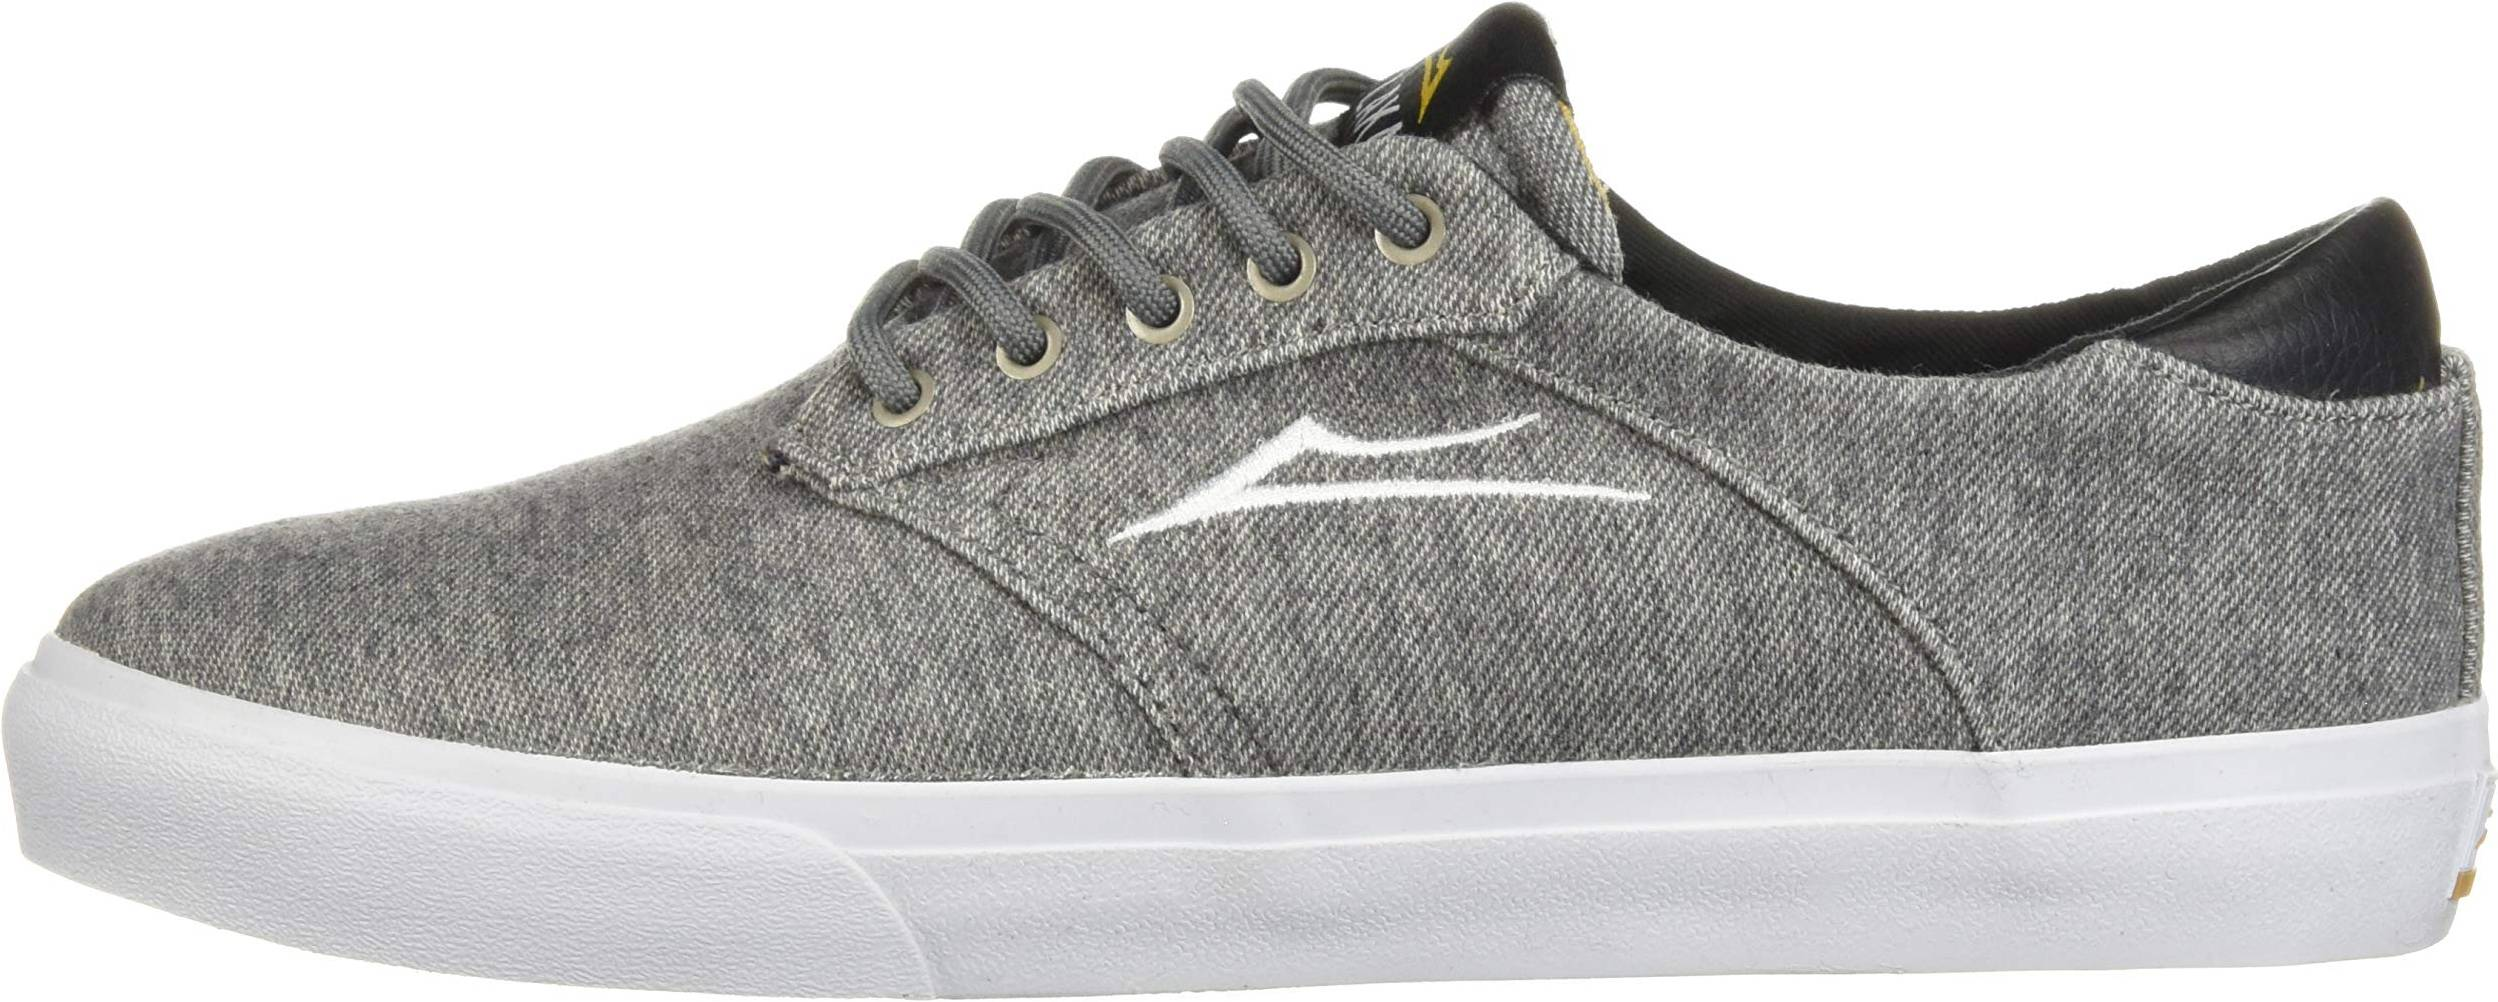 Only £35 + Review of Lakai Porter